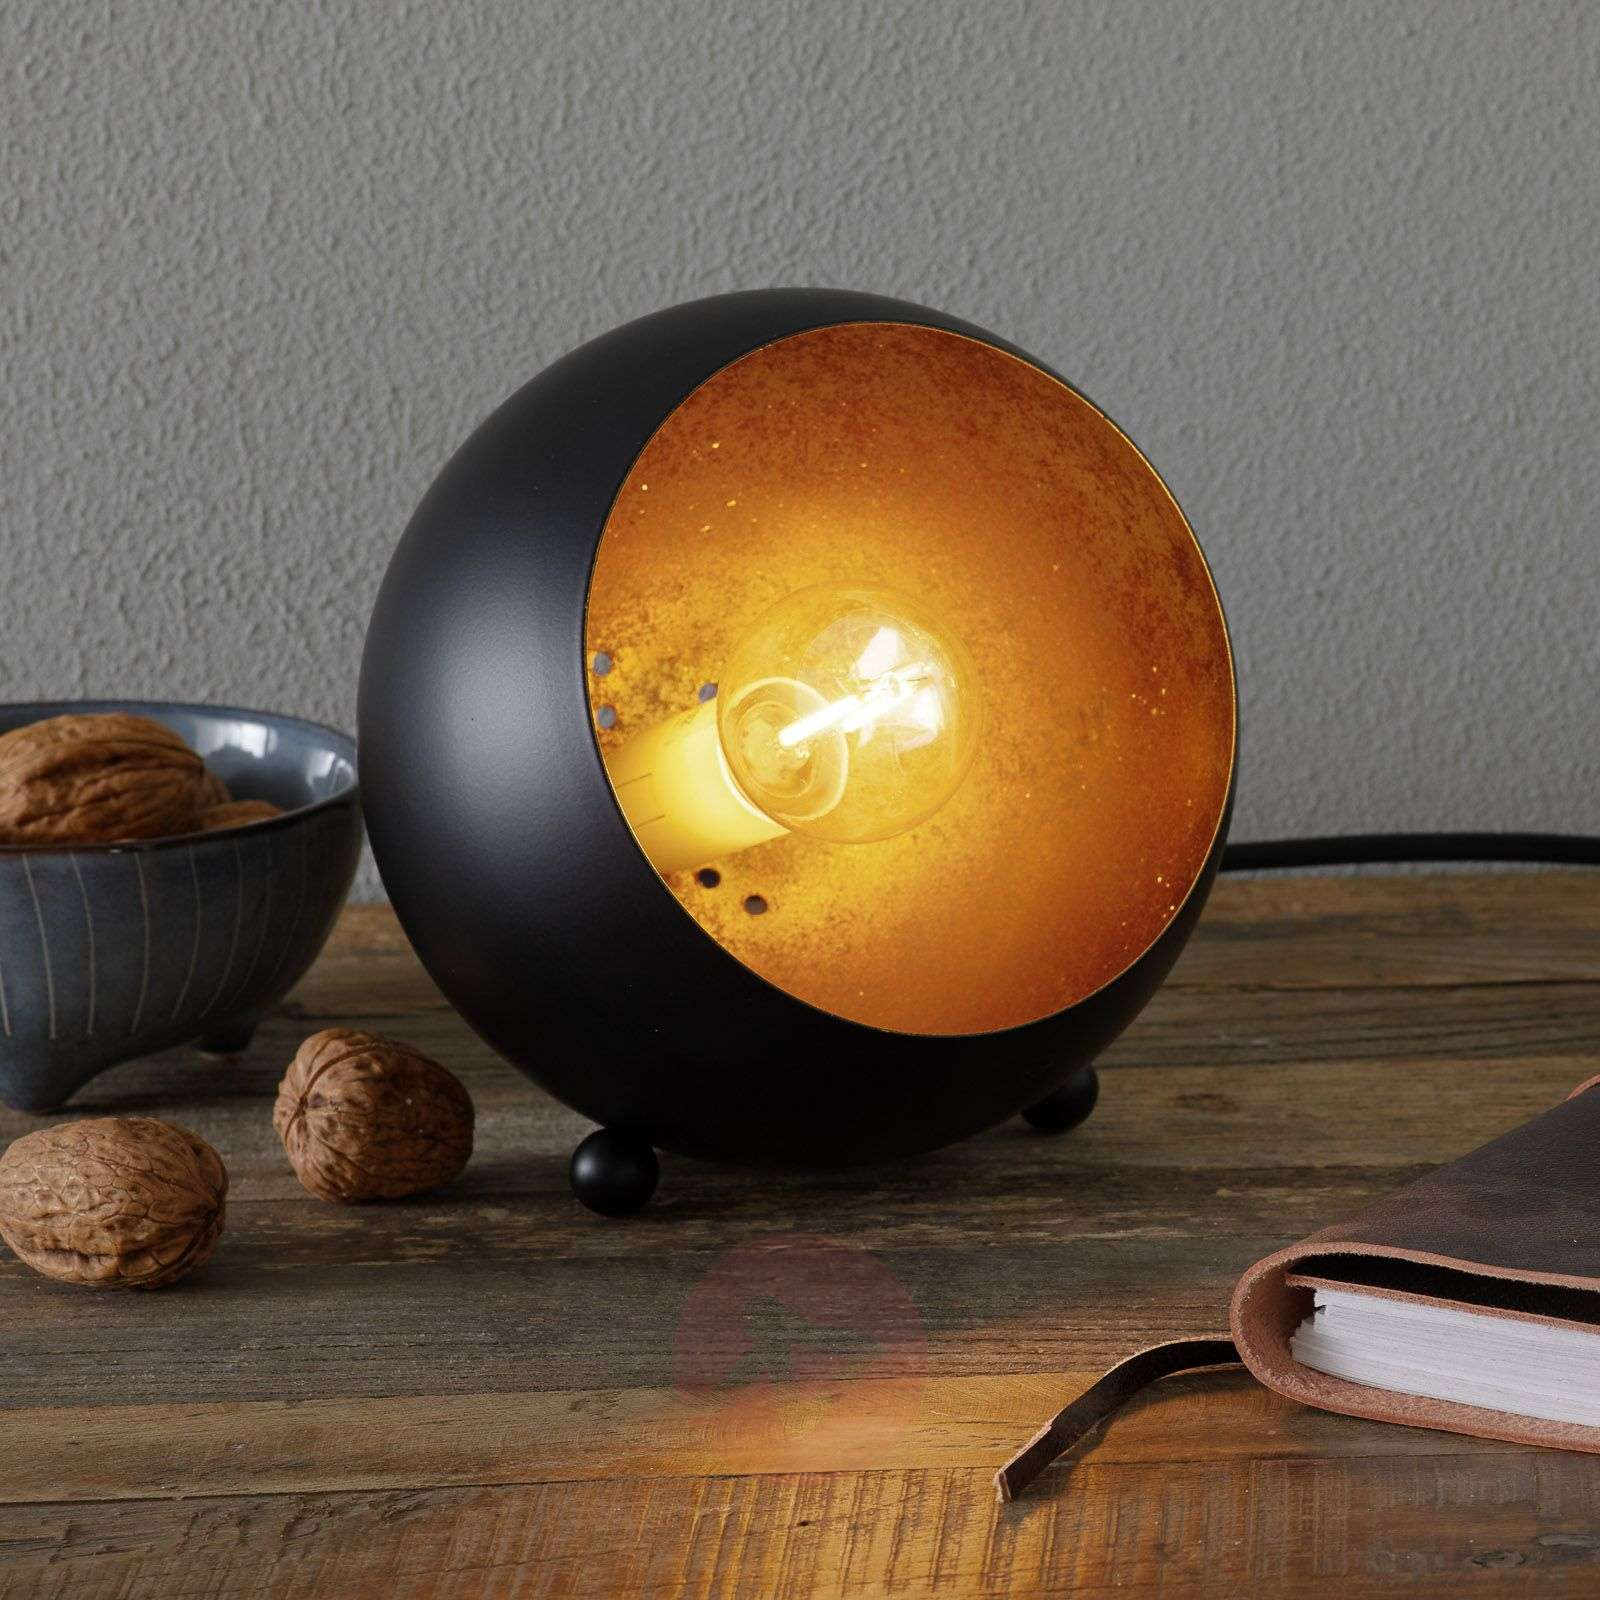 Billy table lamp in a two-coloured design-8029214-01